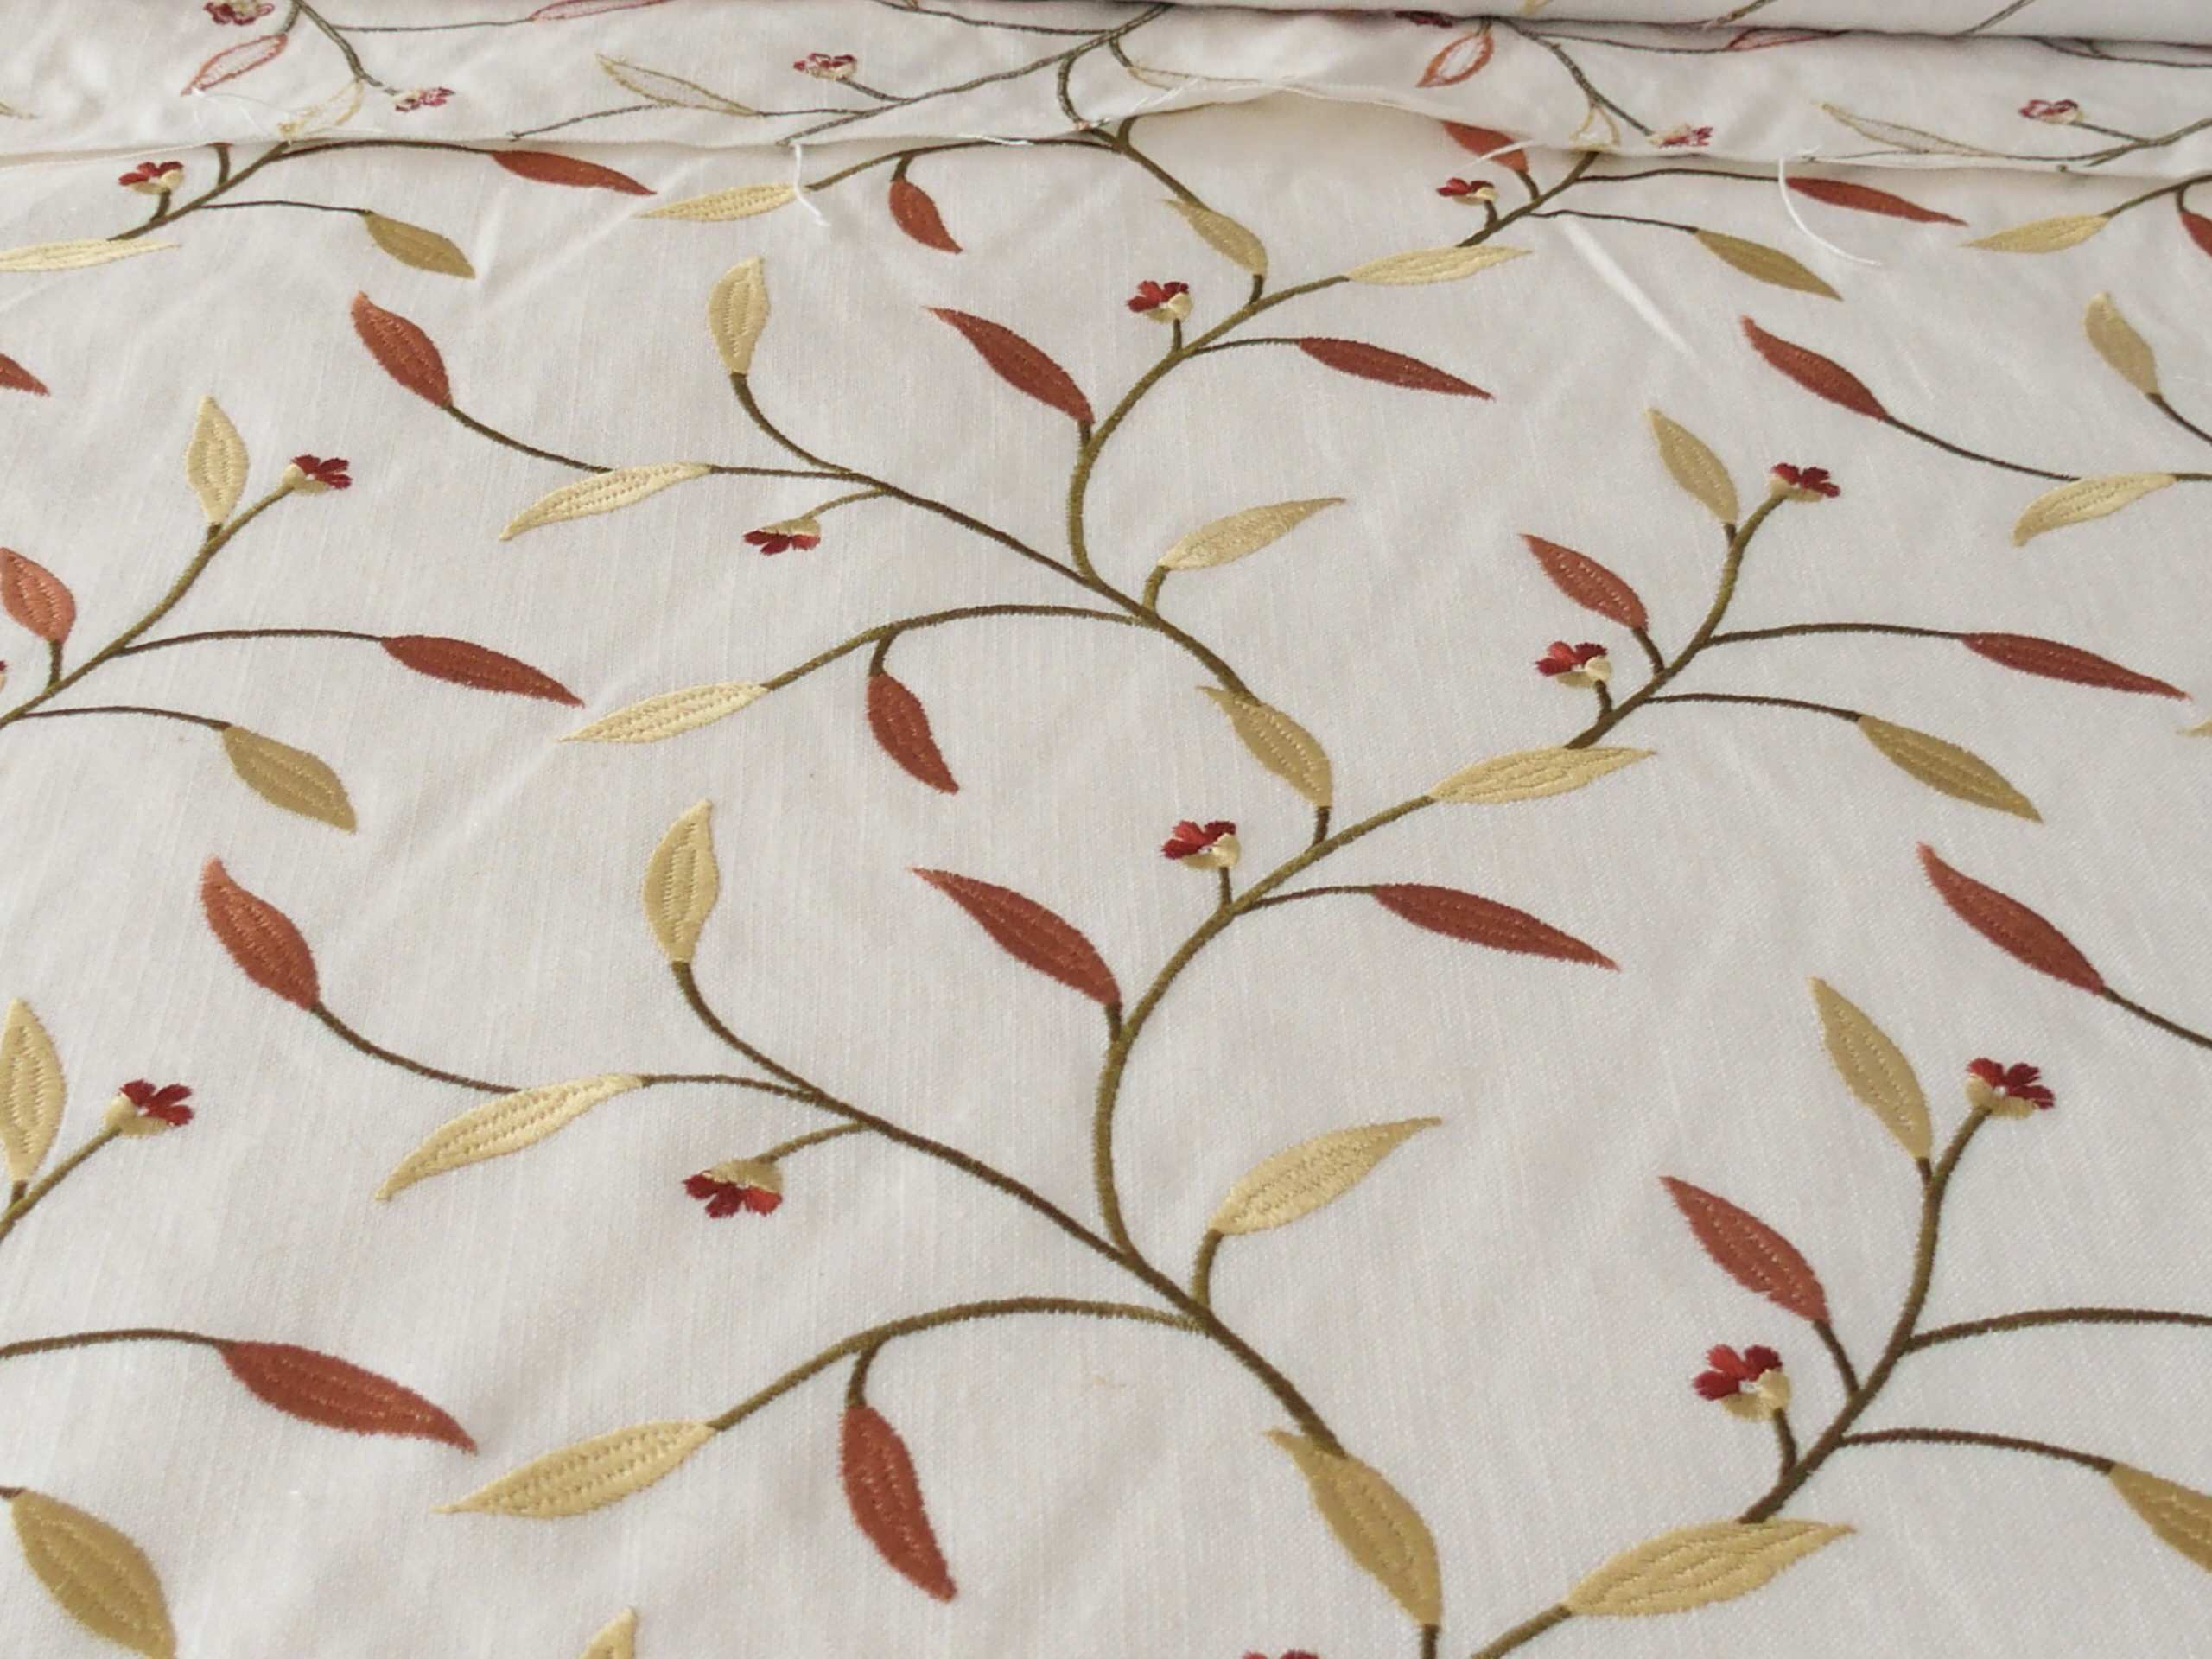 Bedroom draperies in offwhite linen blend with embroidered leaves.